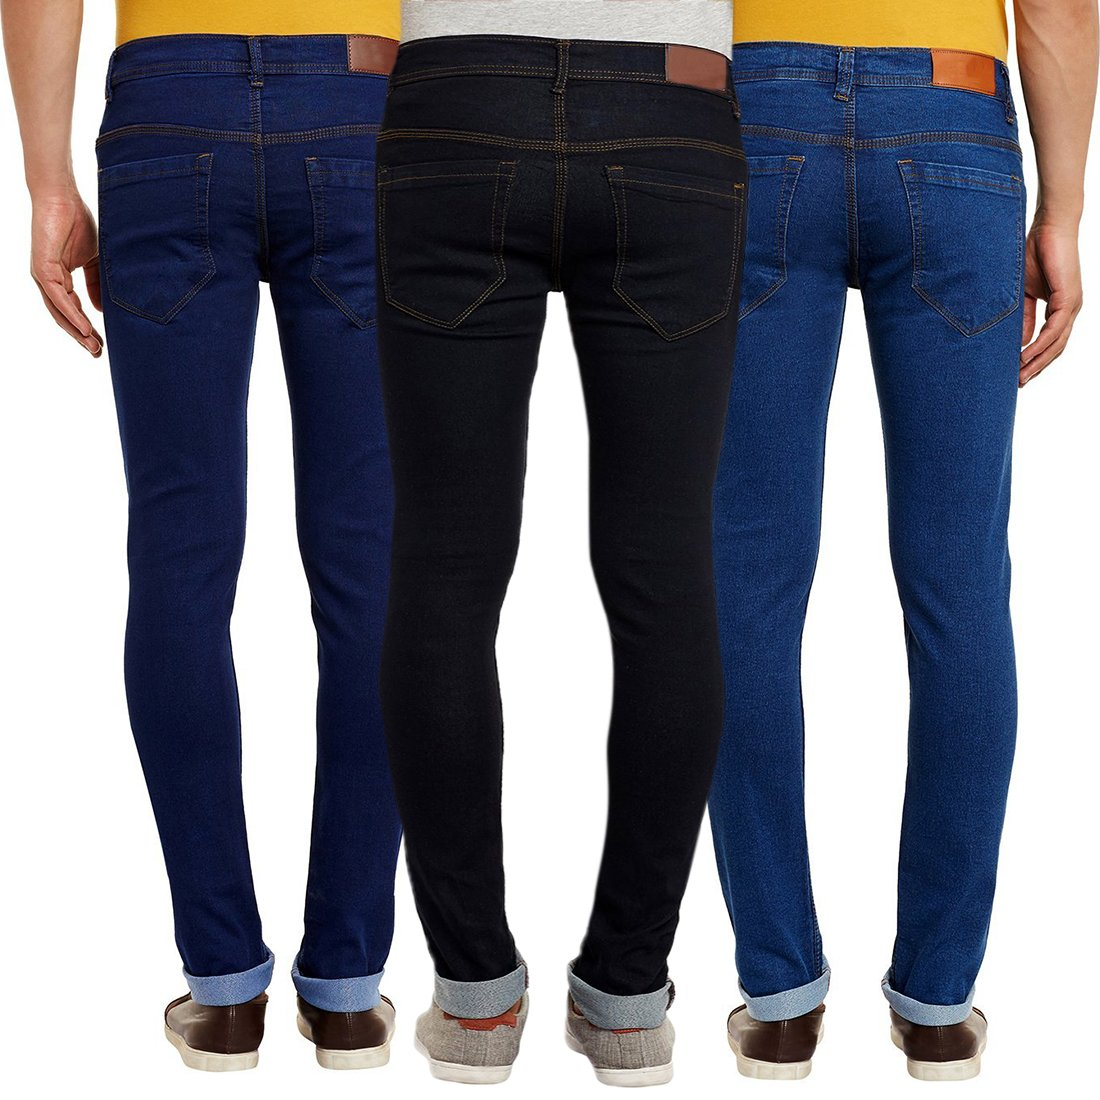 d3449889e3c Waiverson Slim Fit Men s Multicolor Jeans (Pack of 3)  Amazon.in  Clothing    Accessories